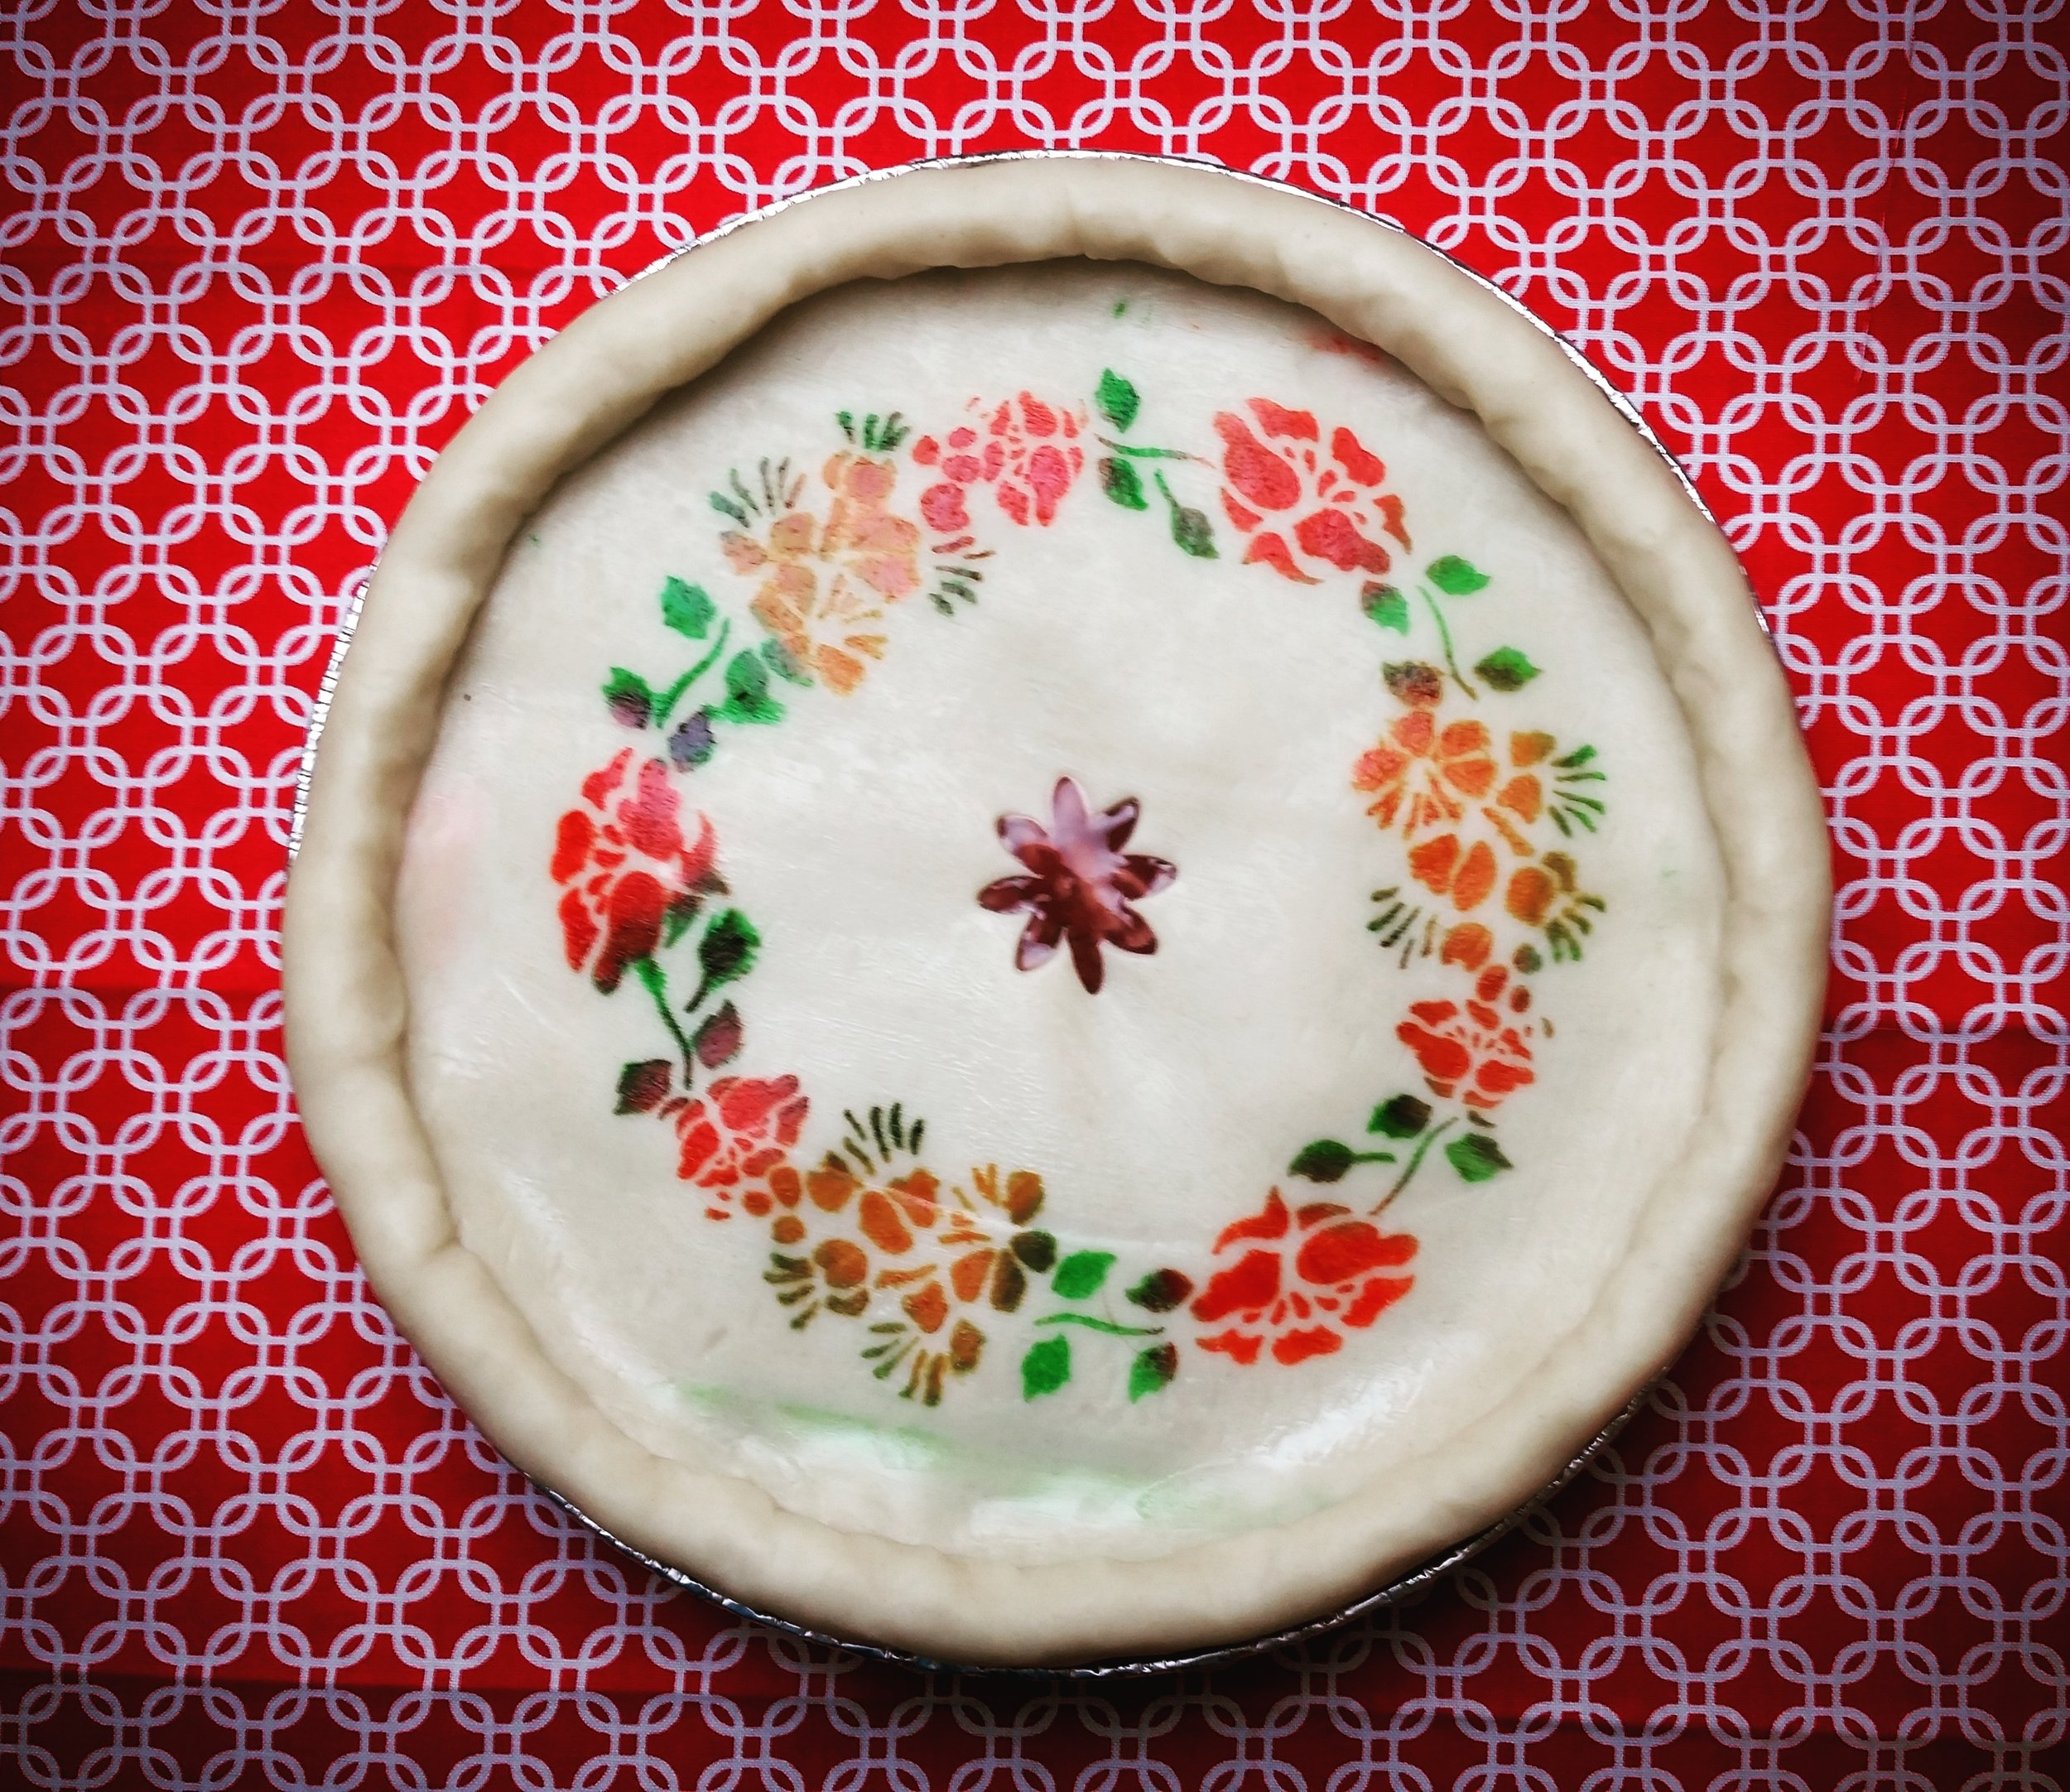 Cherry Pie with stenciling